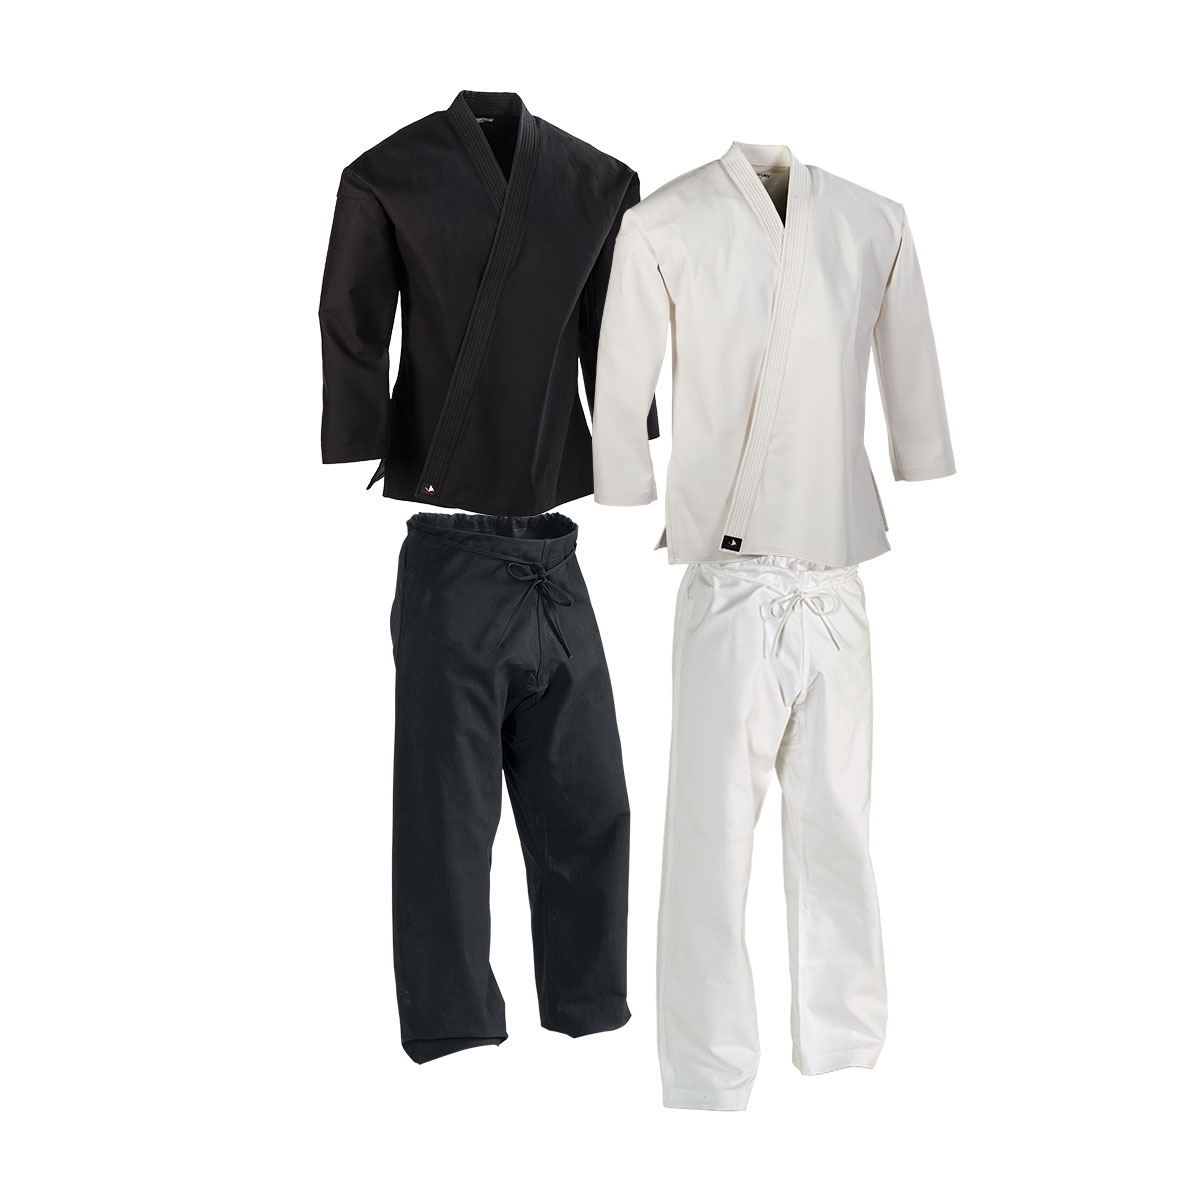 Karate Uniform - Heavy Weight